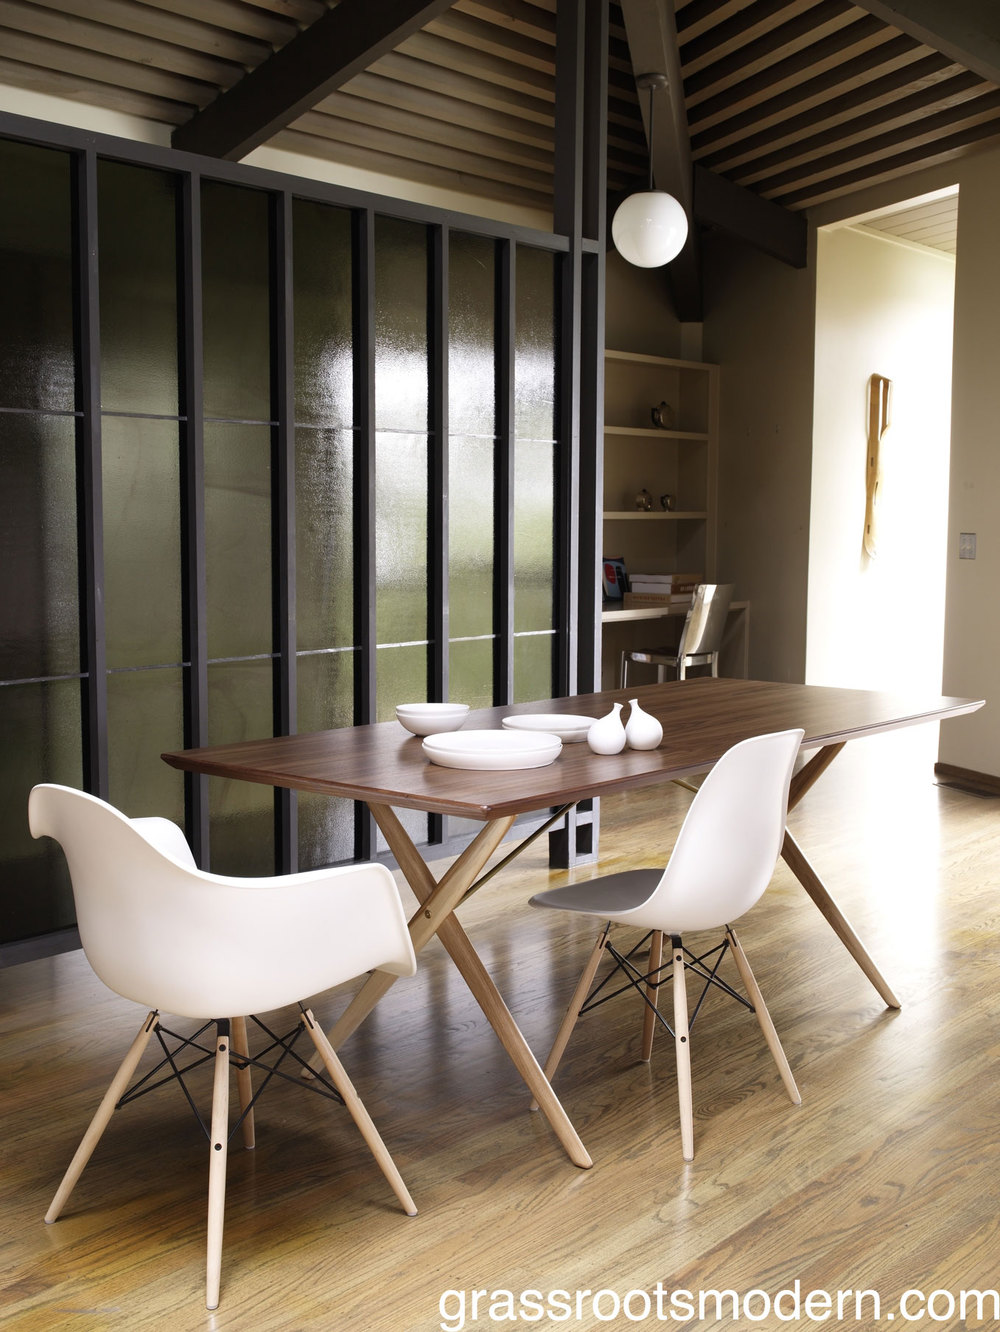 Eames Molded Chair With Wood Dowel Base